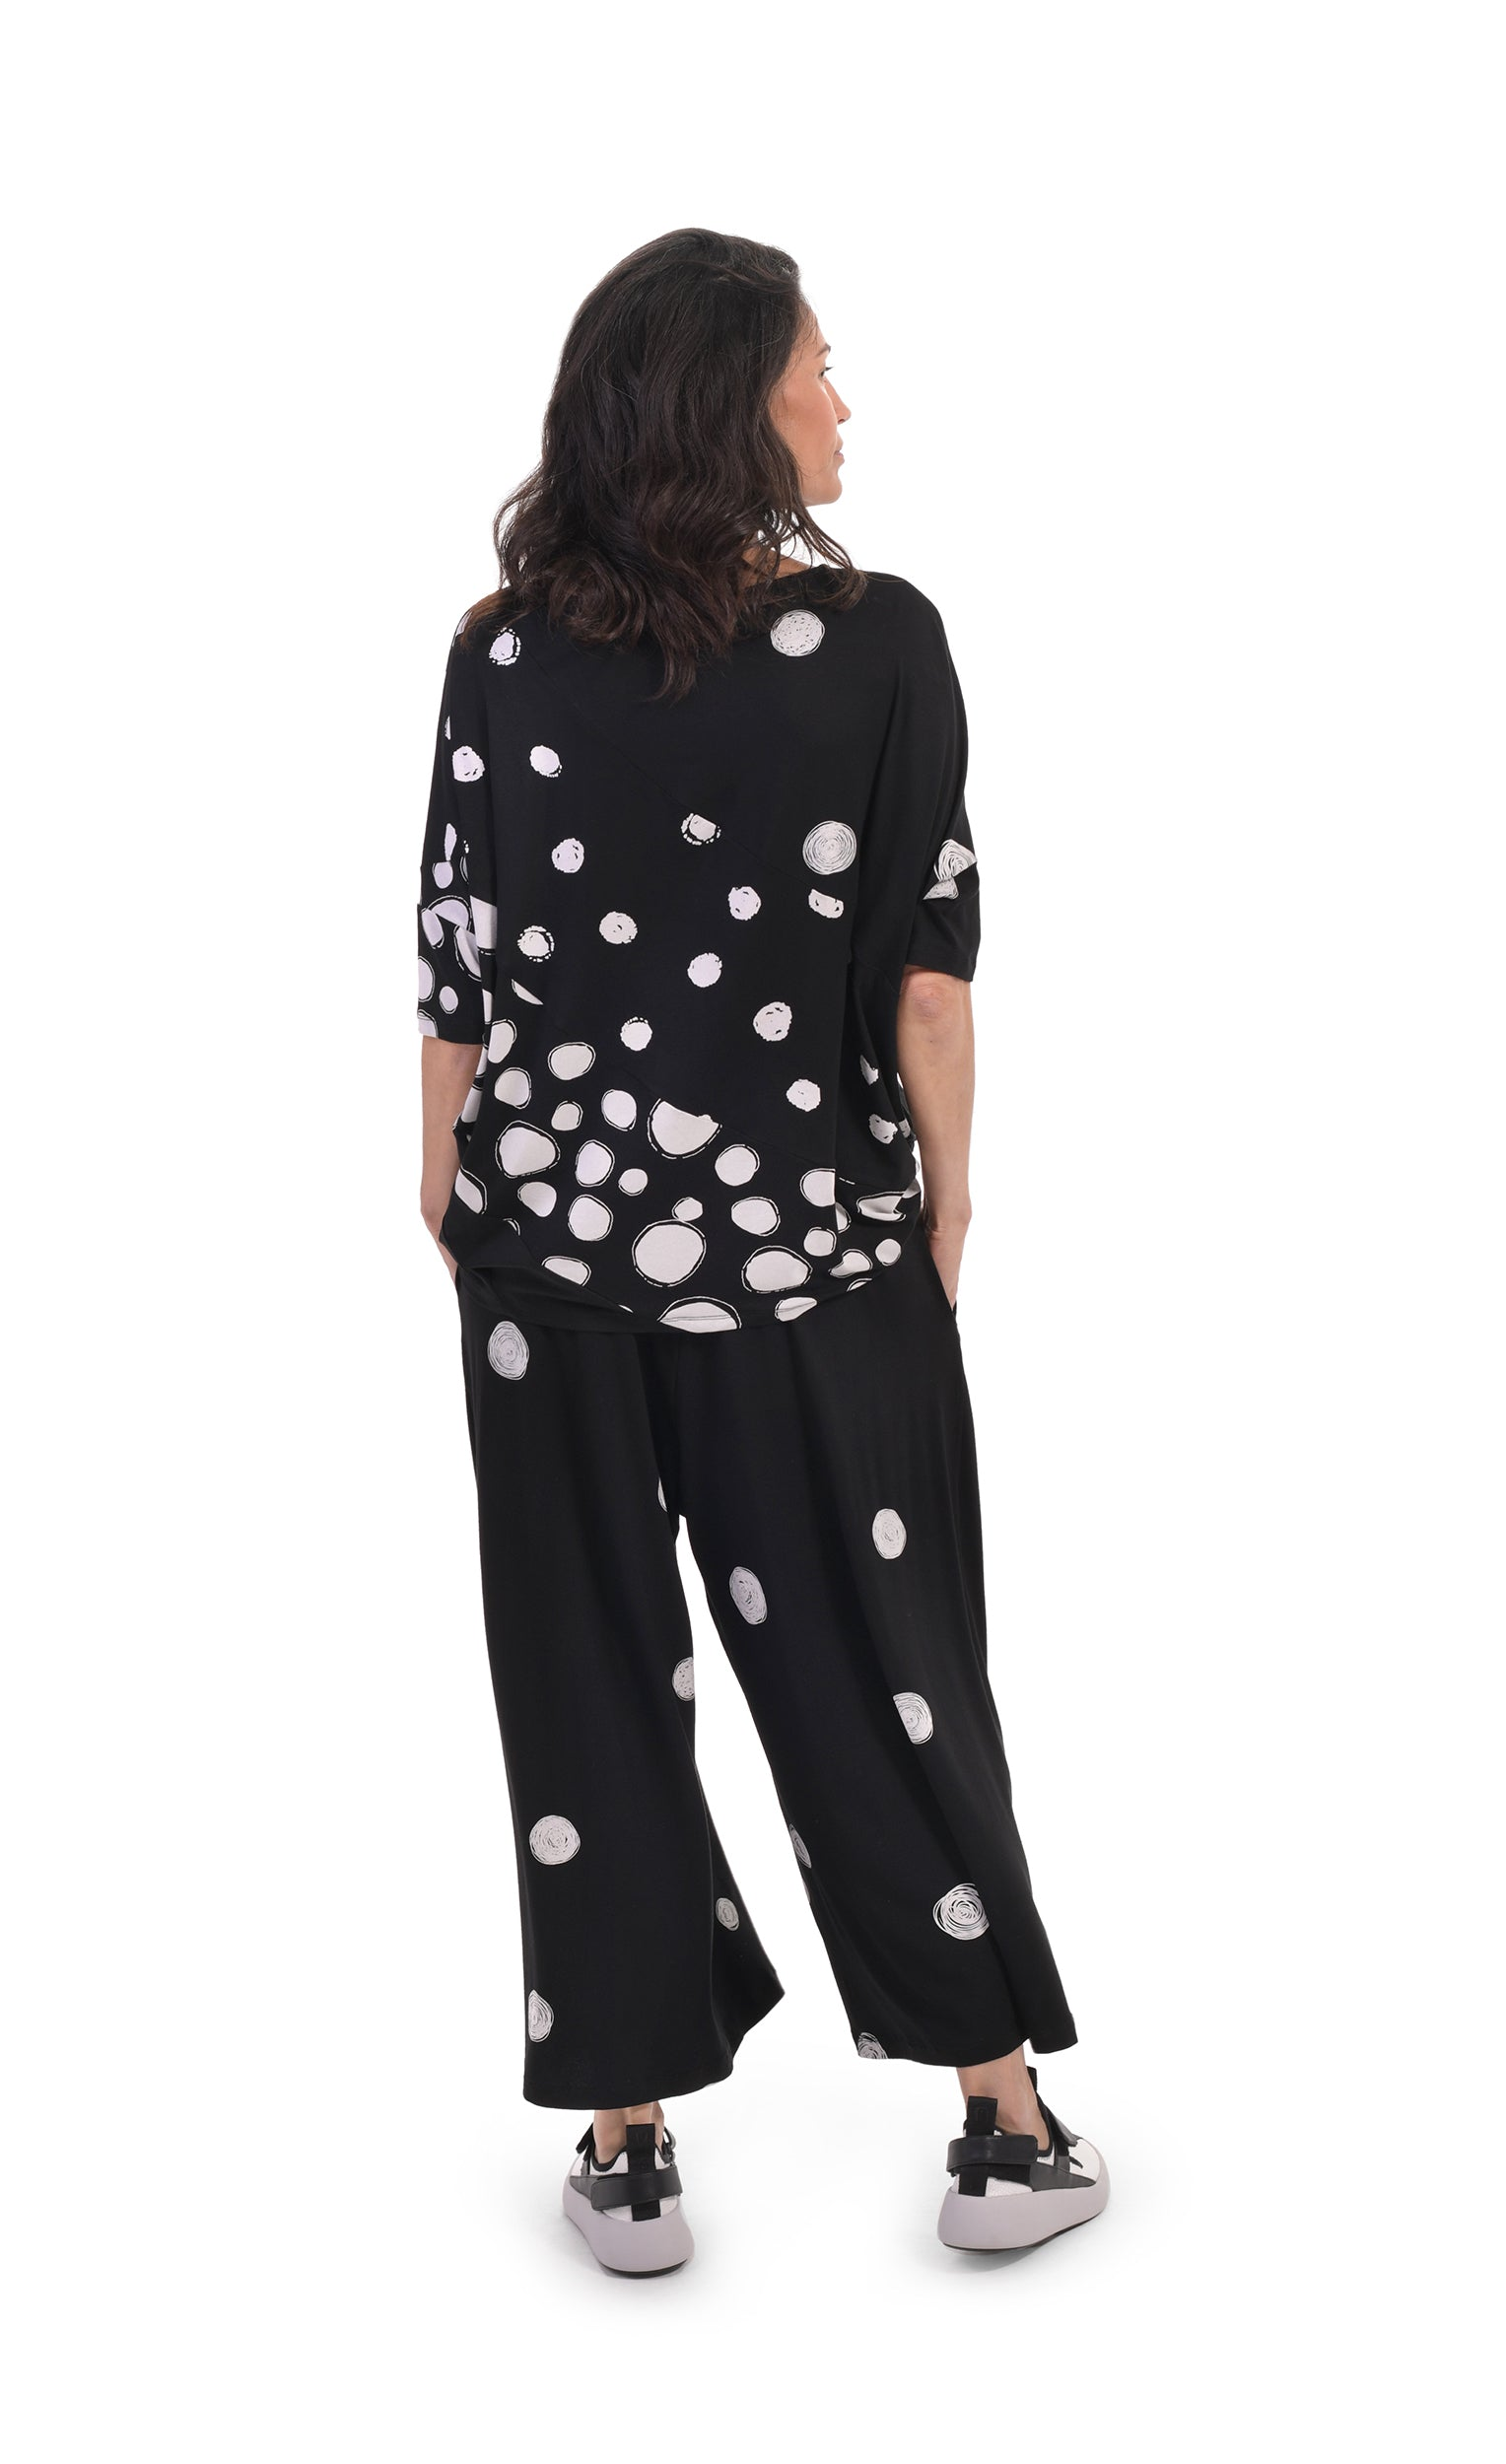 Back, full body view of a woman wearing the alembika multi spotted lia jersey top. This top is black with different types of white spots all over it. The sleeves are 3/4 length and the shirt has an oversized fit. On the bottom she is wearing full leg black pants with white dots.